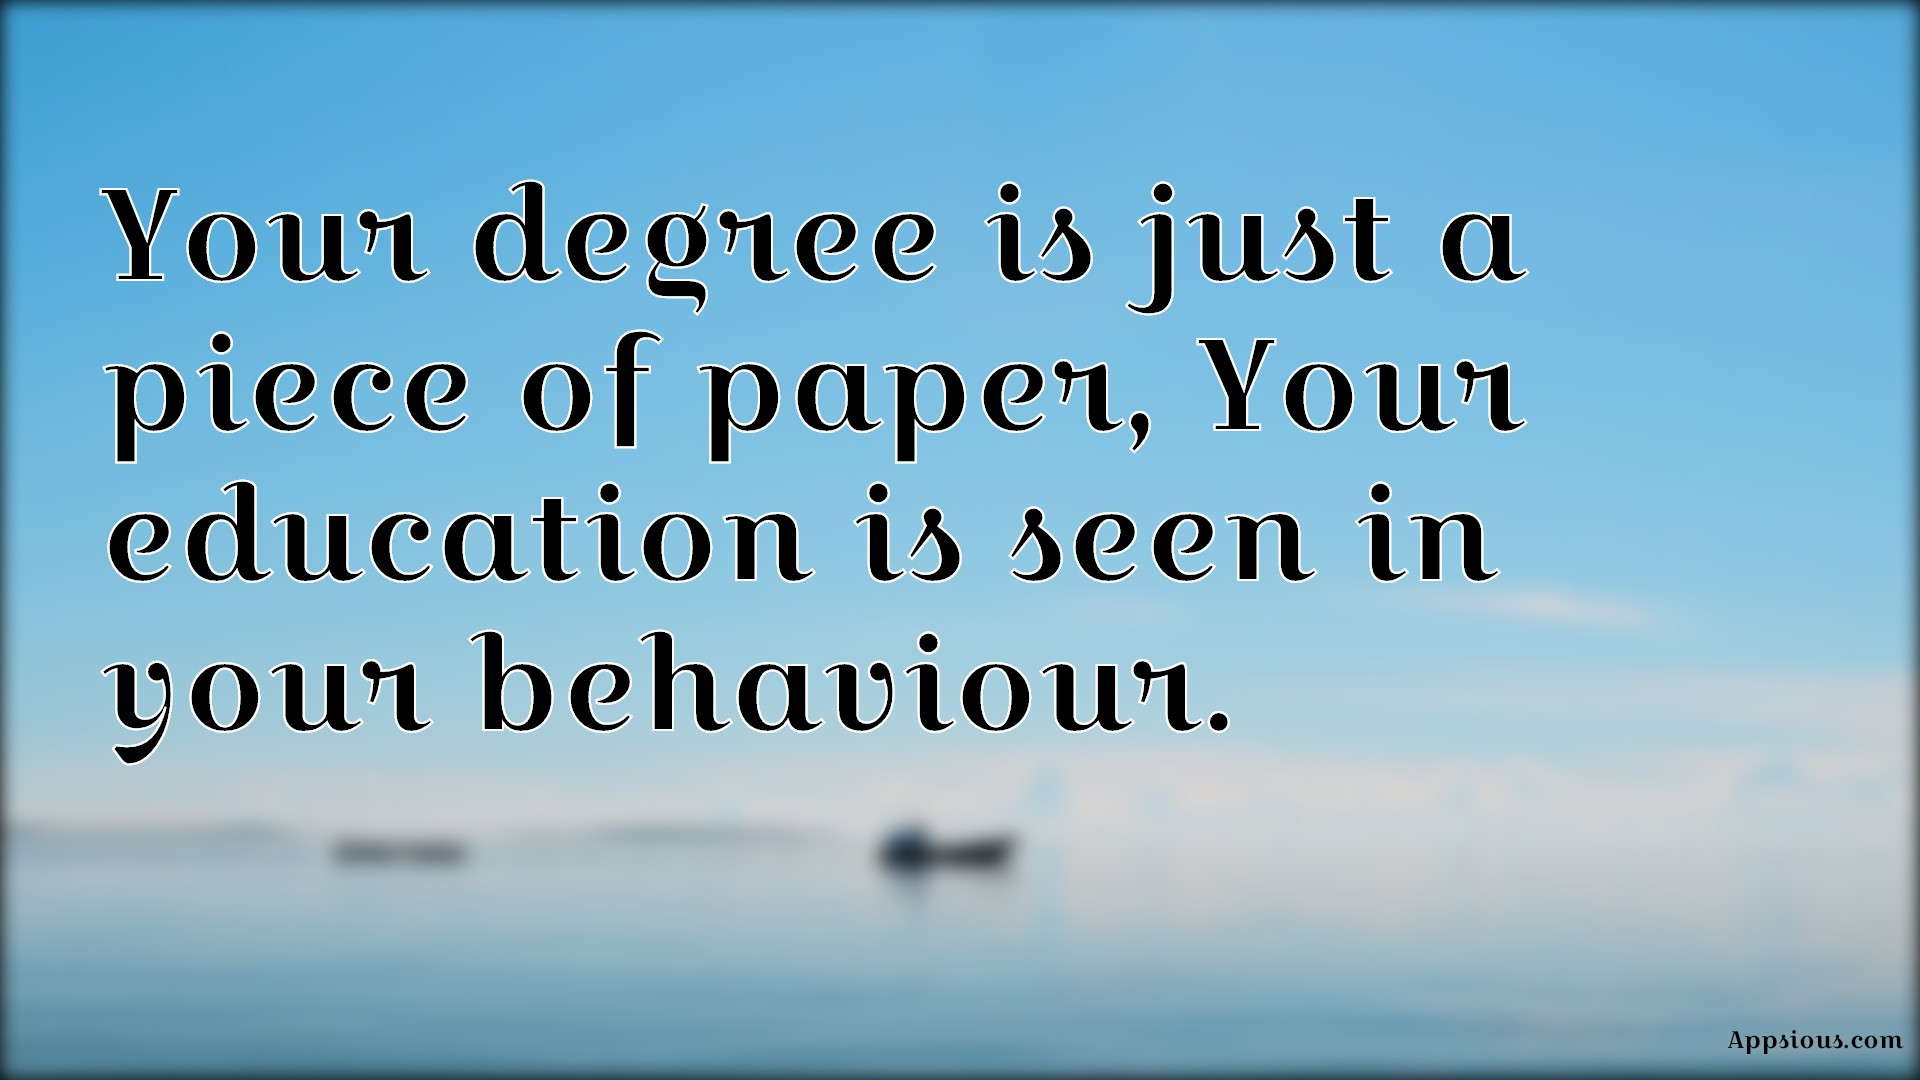 Your degree is just a piece of paper, Your education is seen in your behaviour.